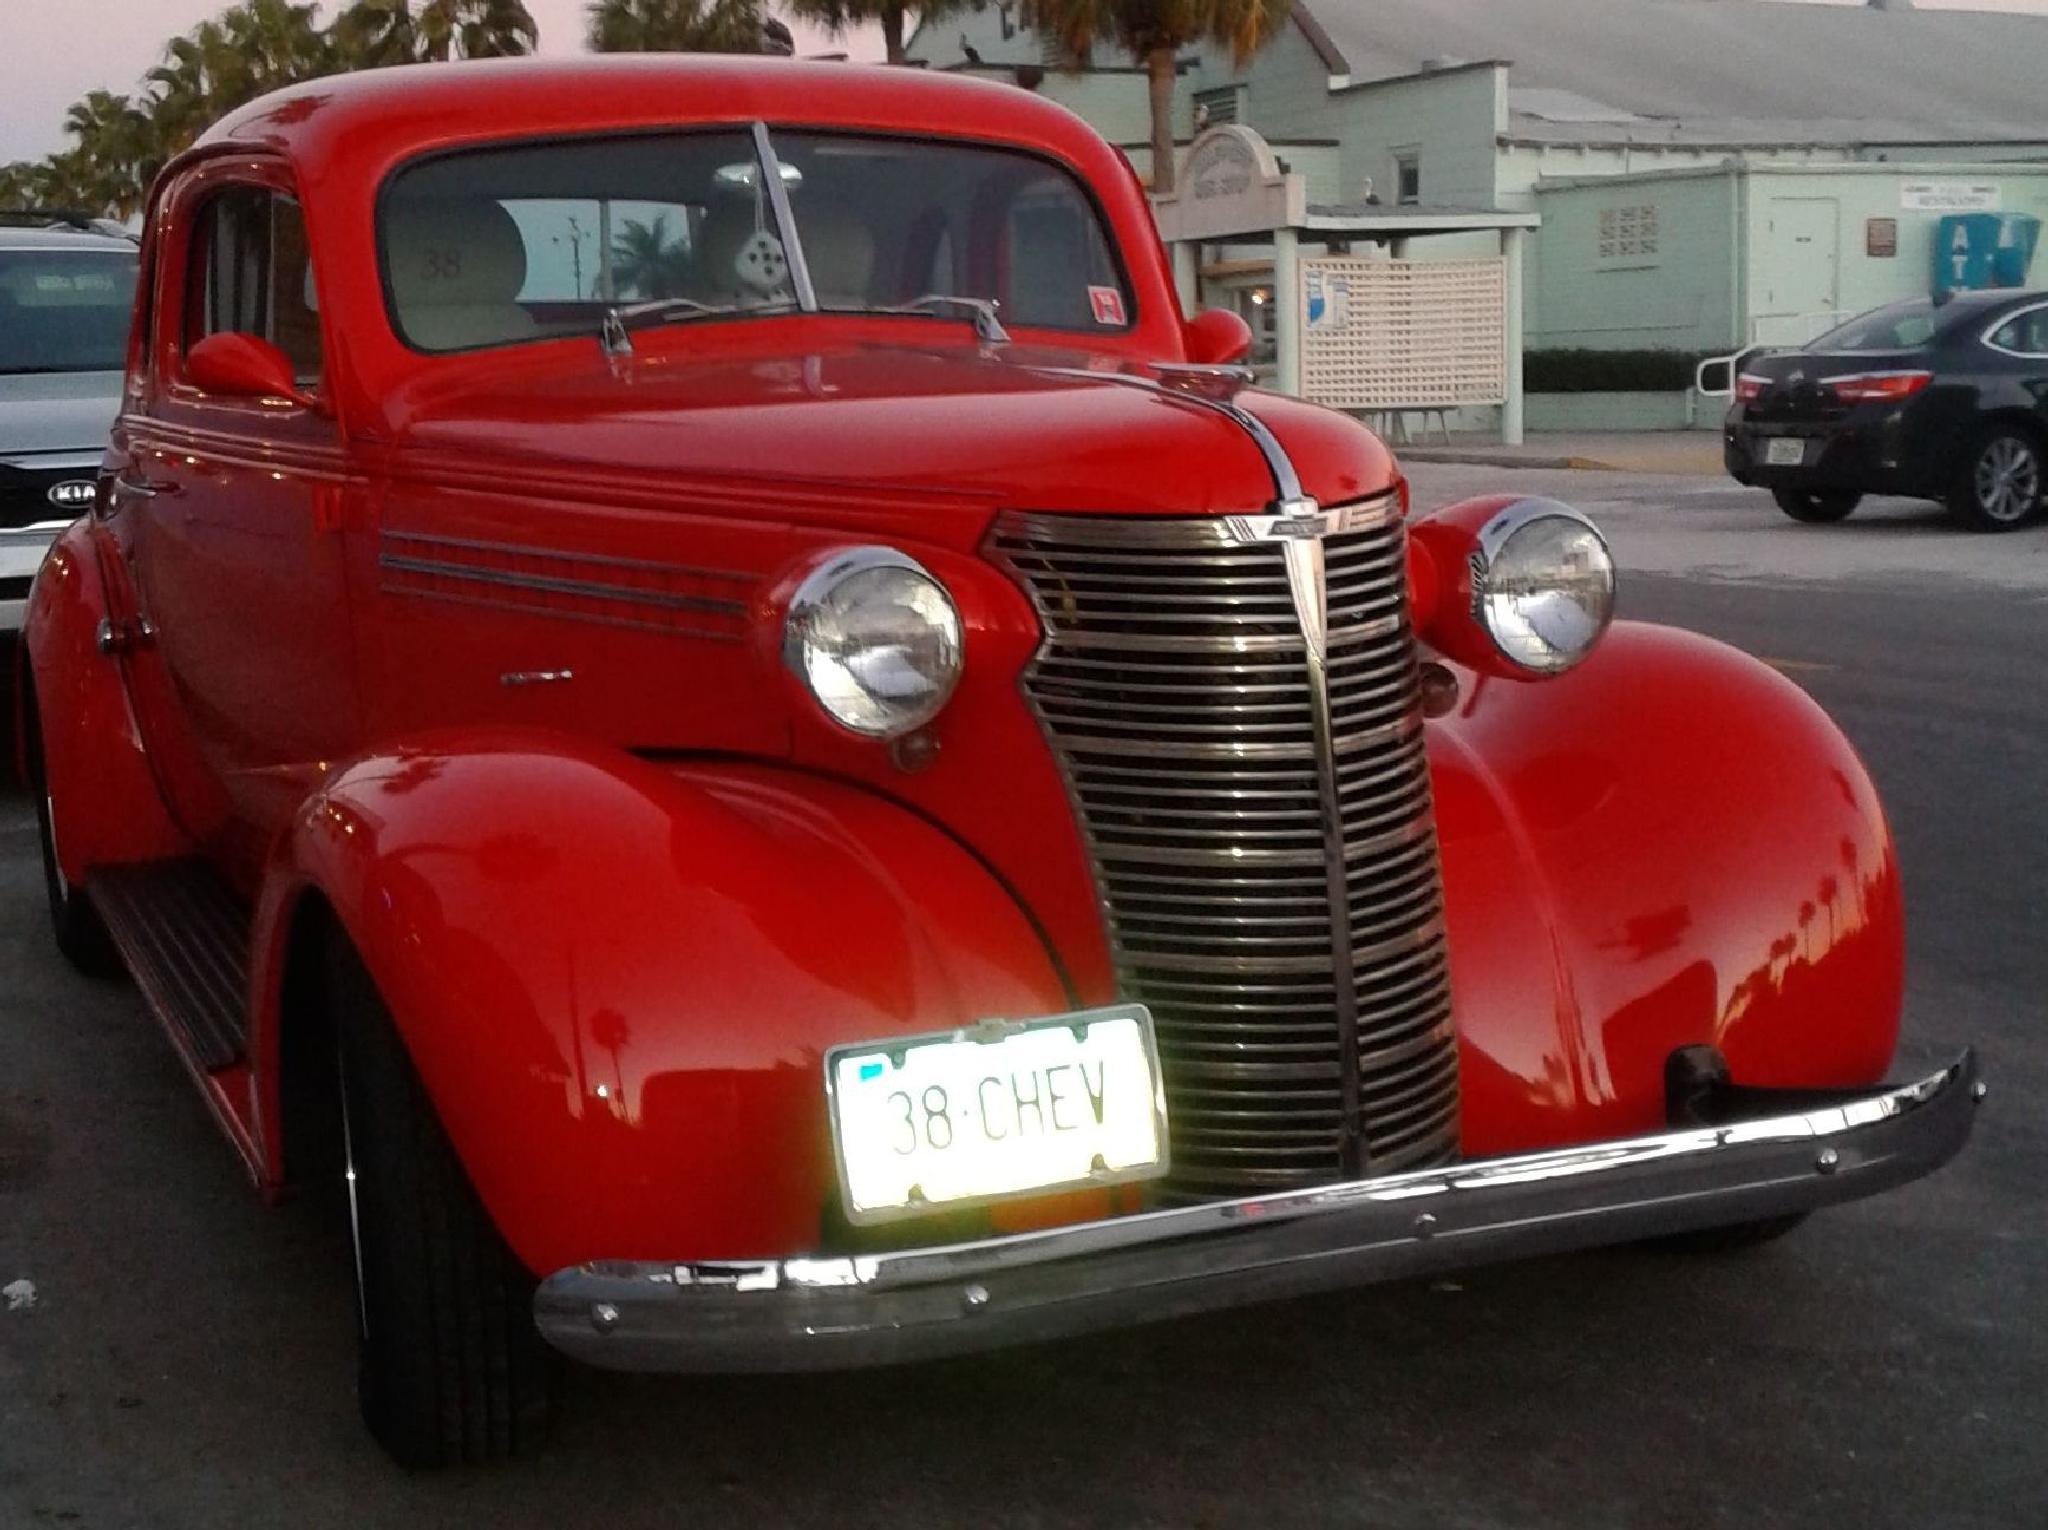 38 Chevy In RED  by Journeyman